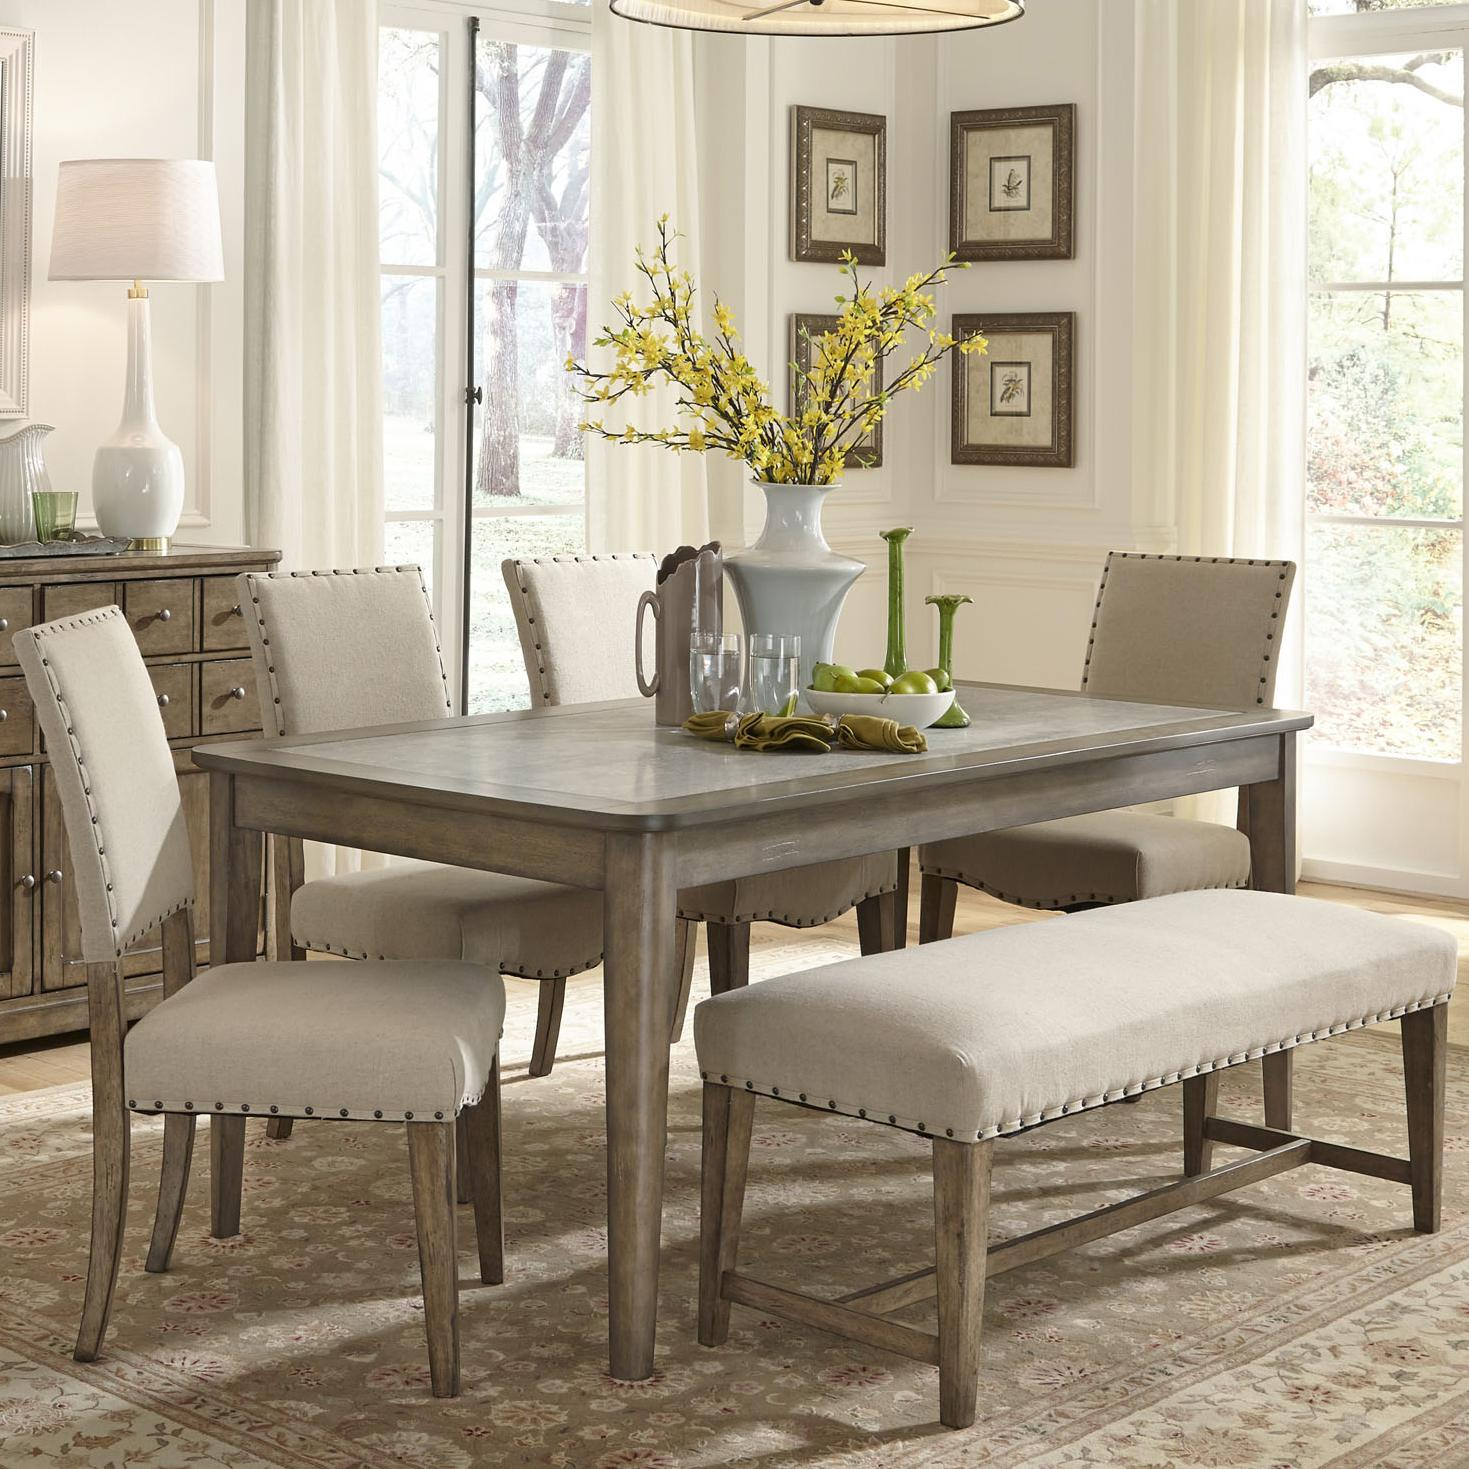 High Bench Table Liberty Furniture Weatherford Rustic Casual 6 Piece Dining